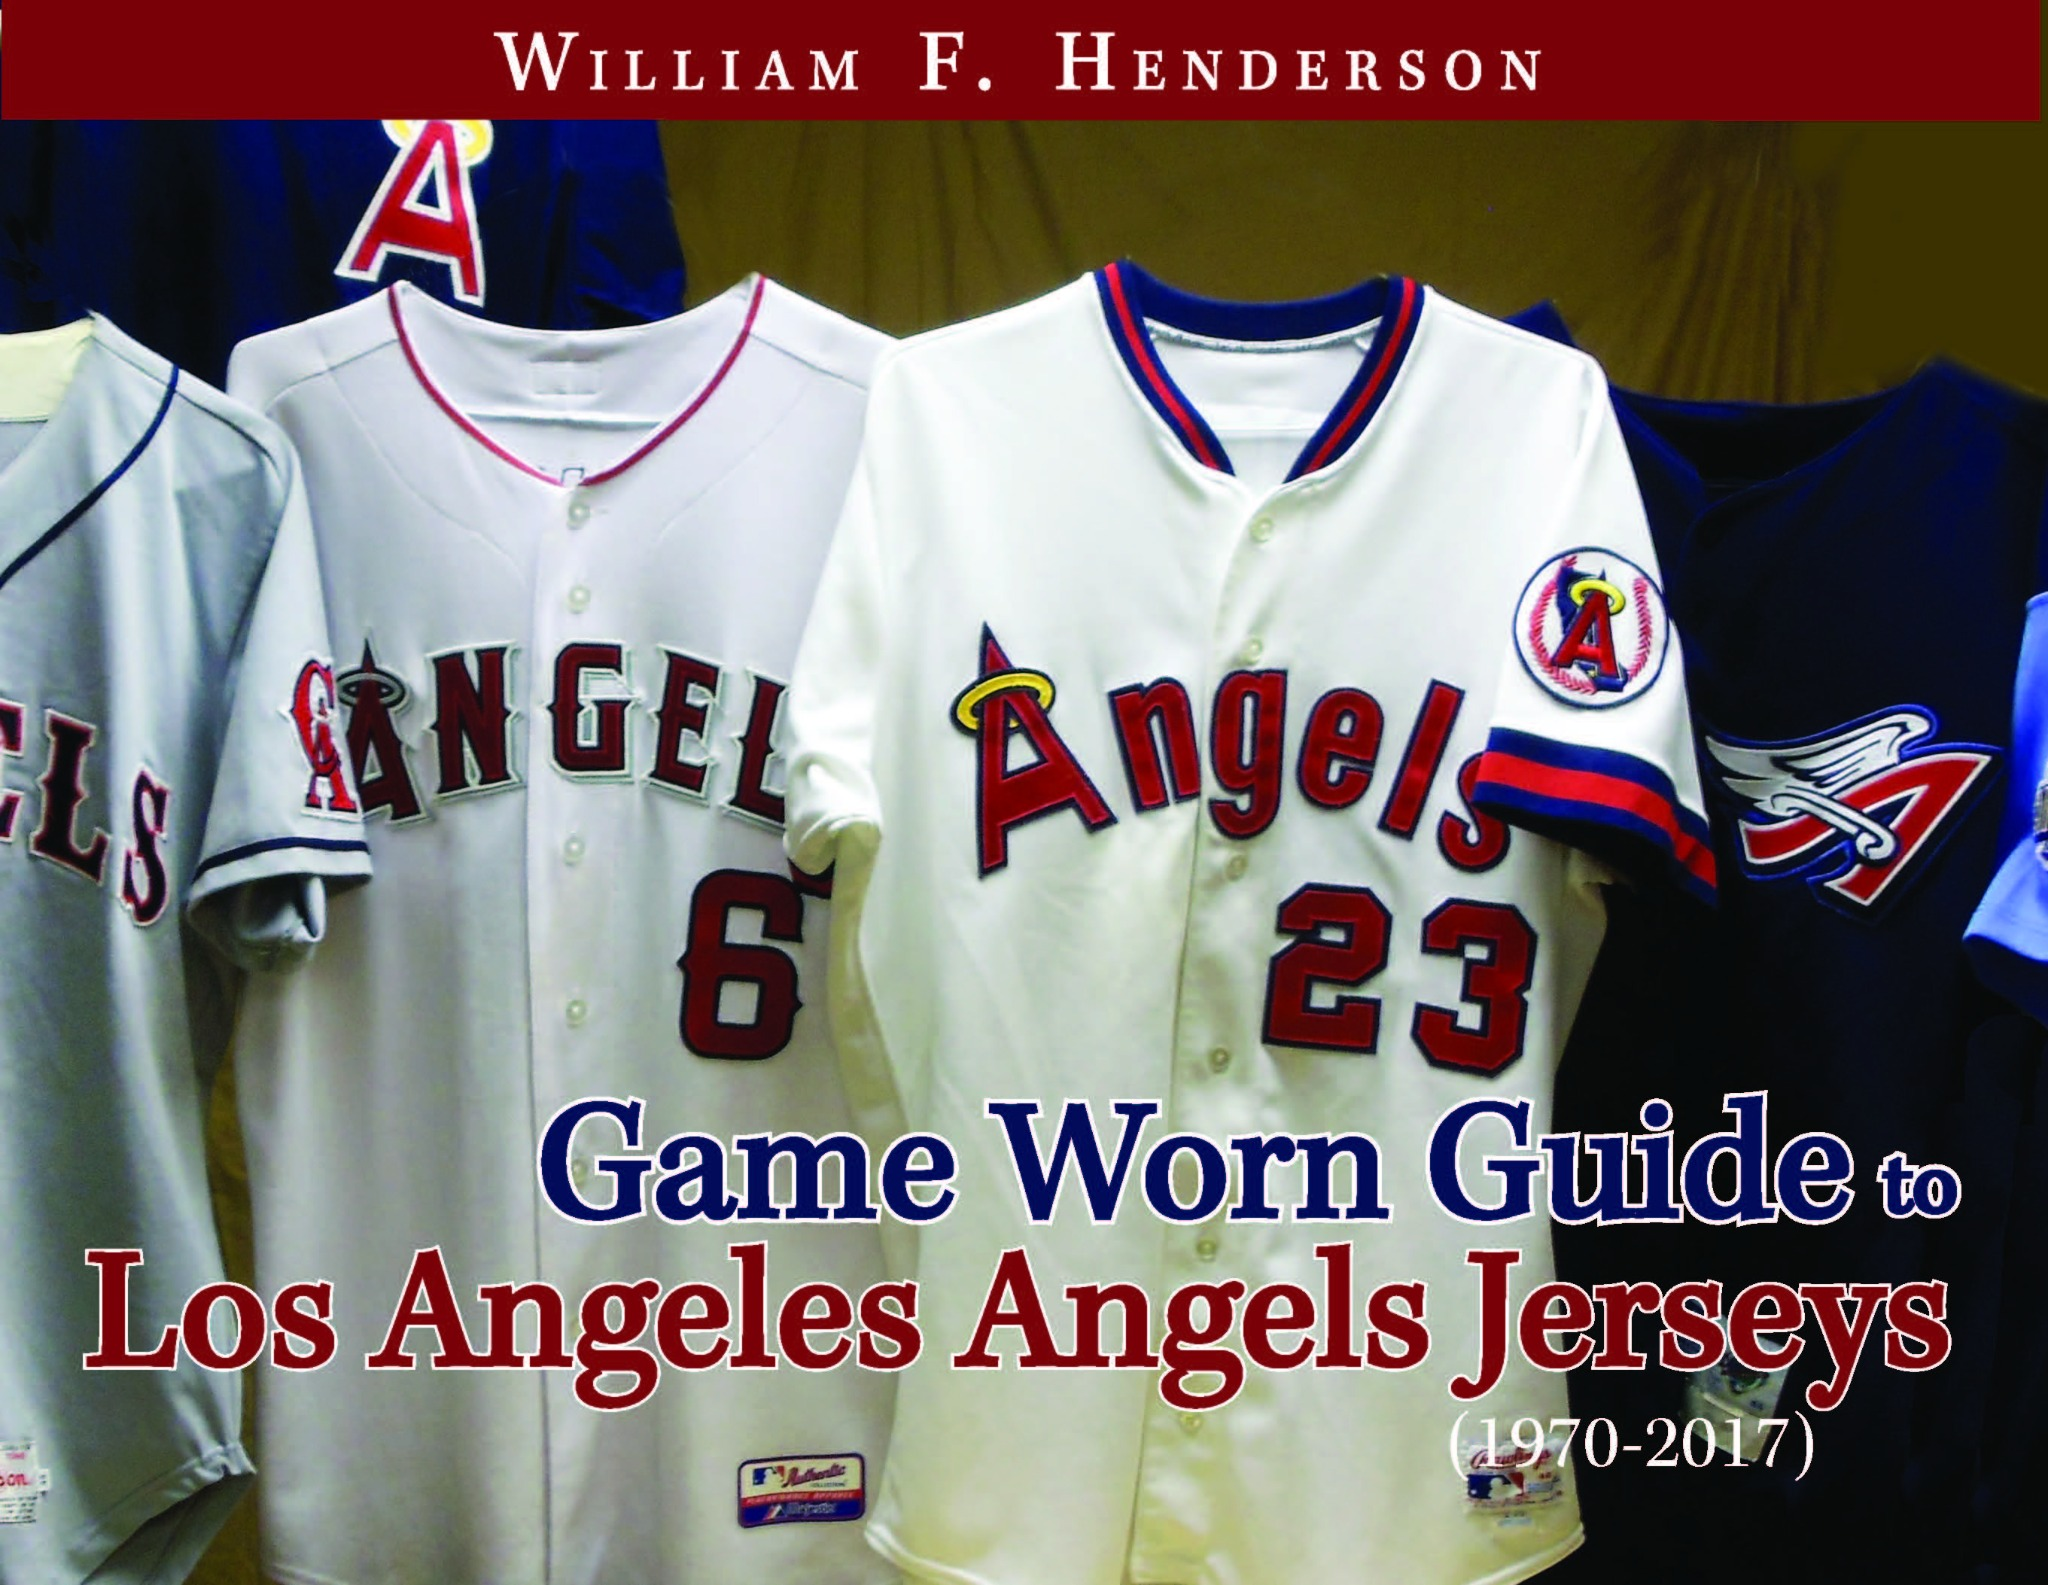 Game Worn Guide to Los Angeles/Anaheim/California Angels Jerseys (1970-2017)